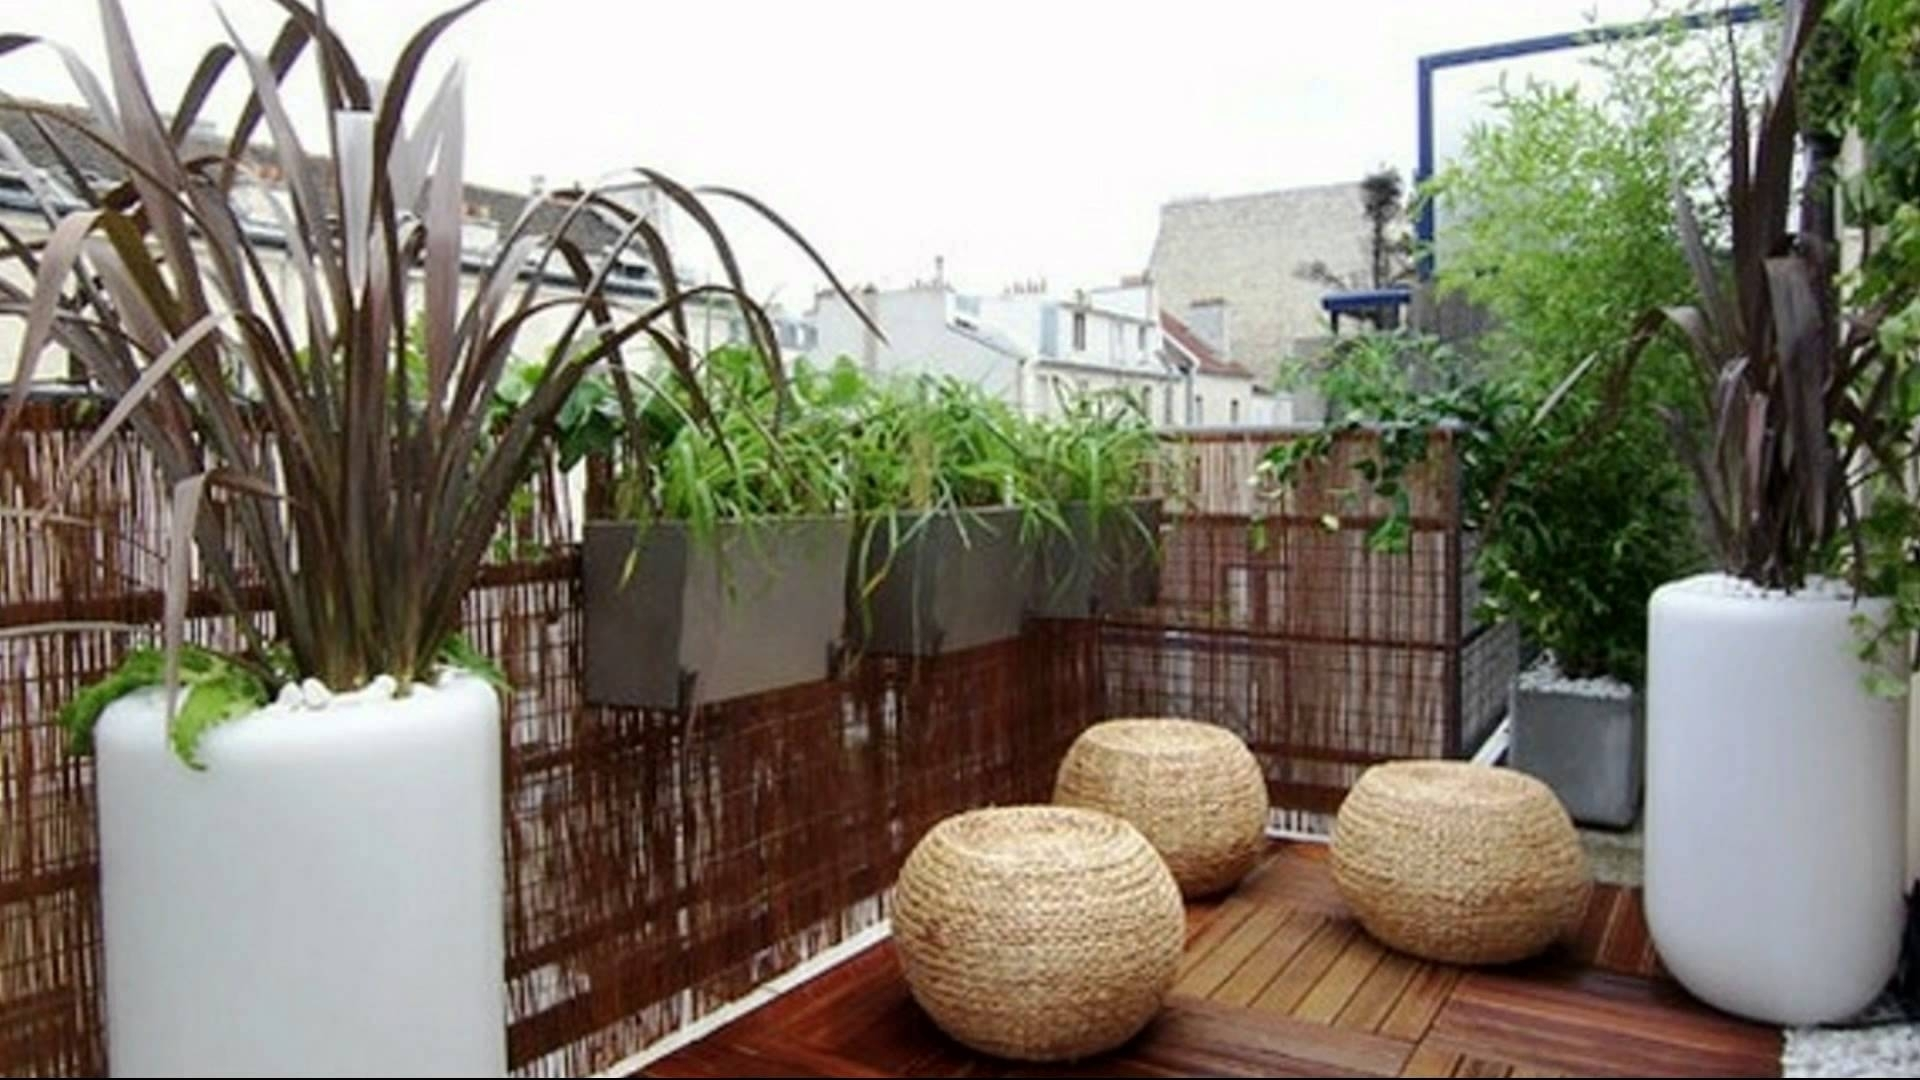 Best Layout For Garden State Apartments Design Ideas – Garden Design intended for Best Layout For What Is A Garden Apartment Design Ideas